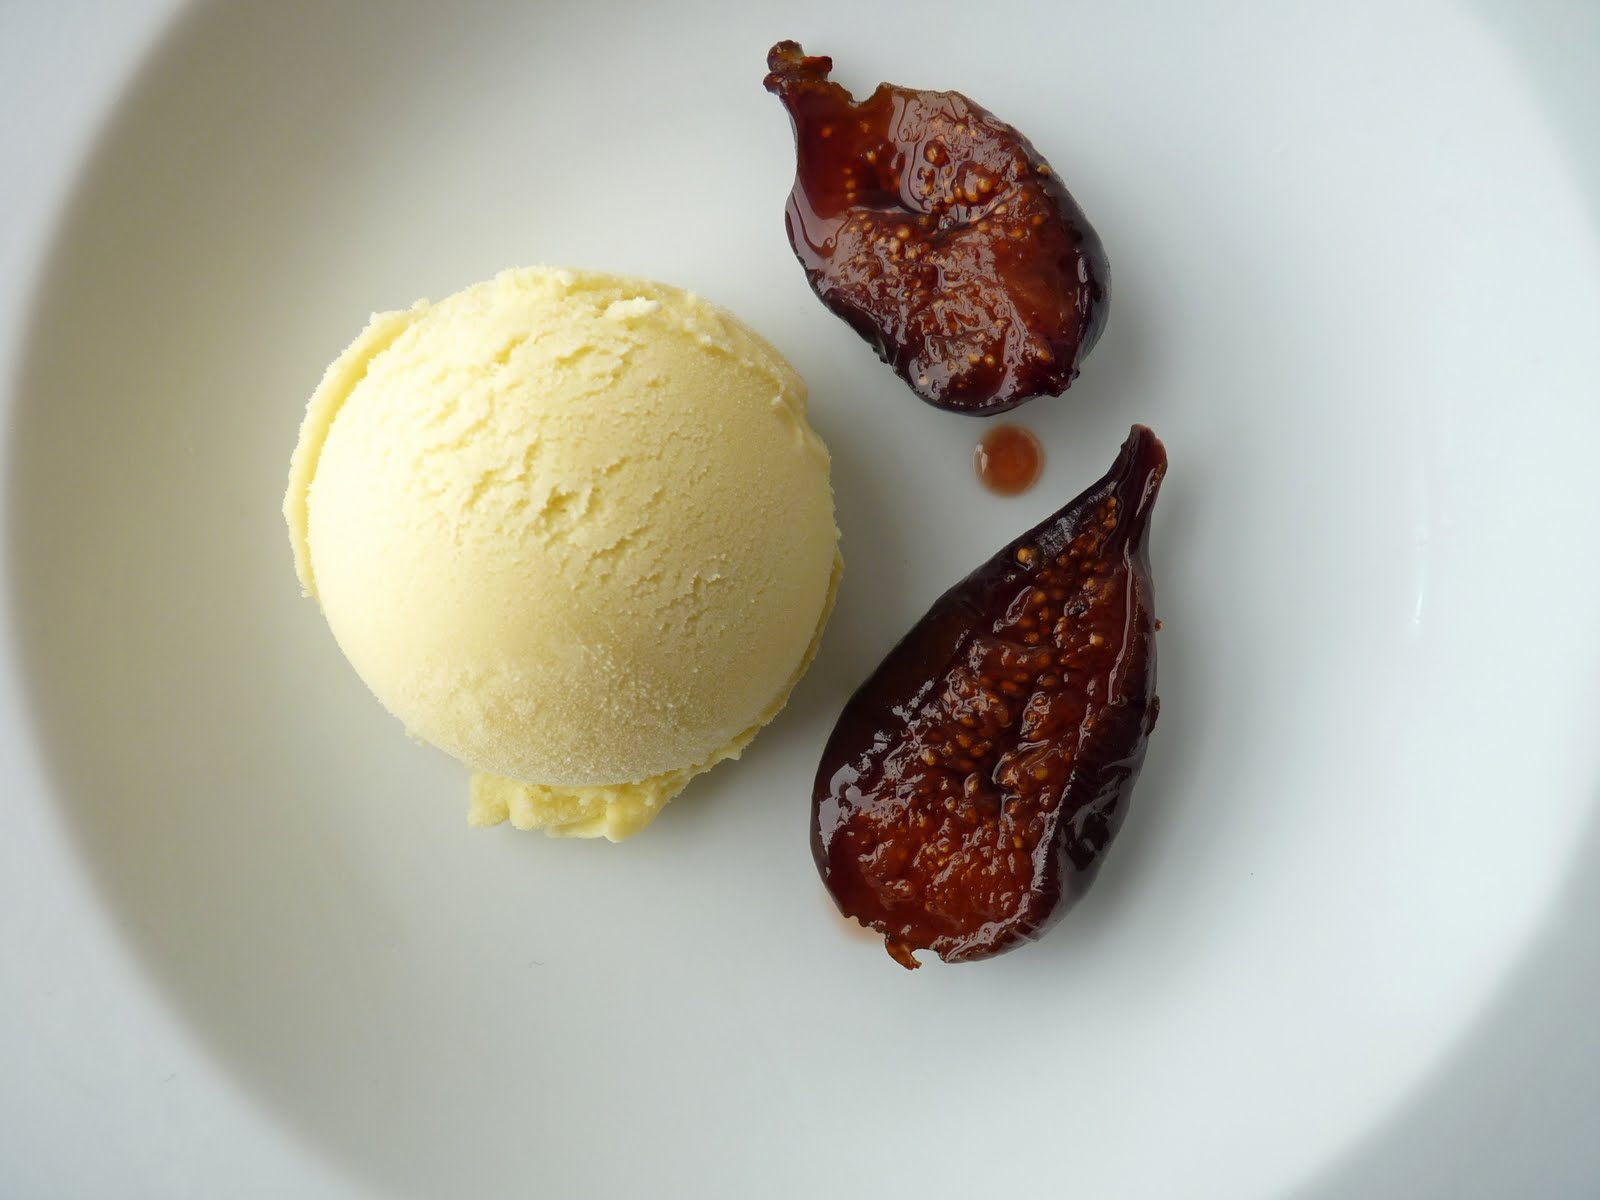 Roasted Figs with Fennel Ice Cream